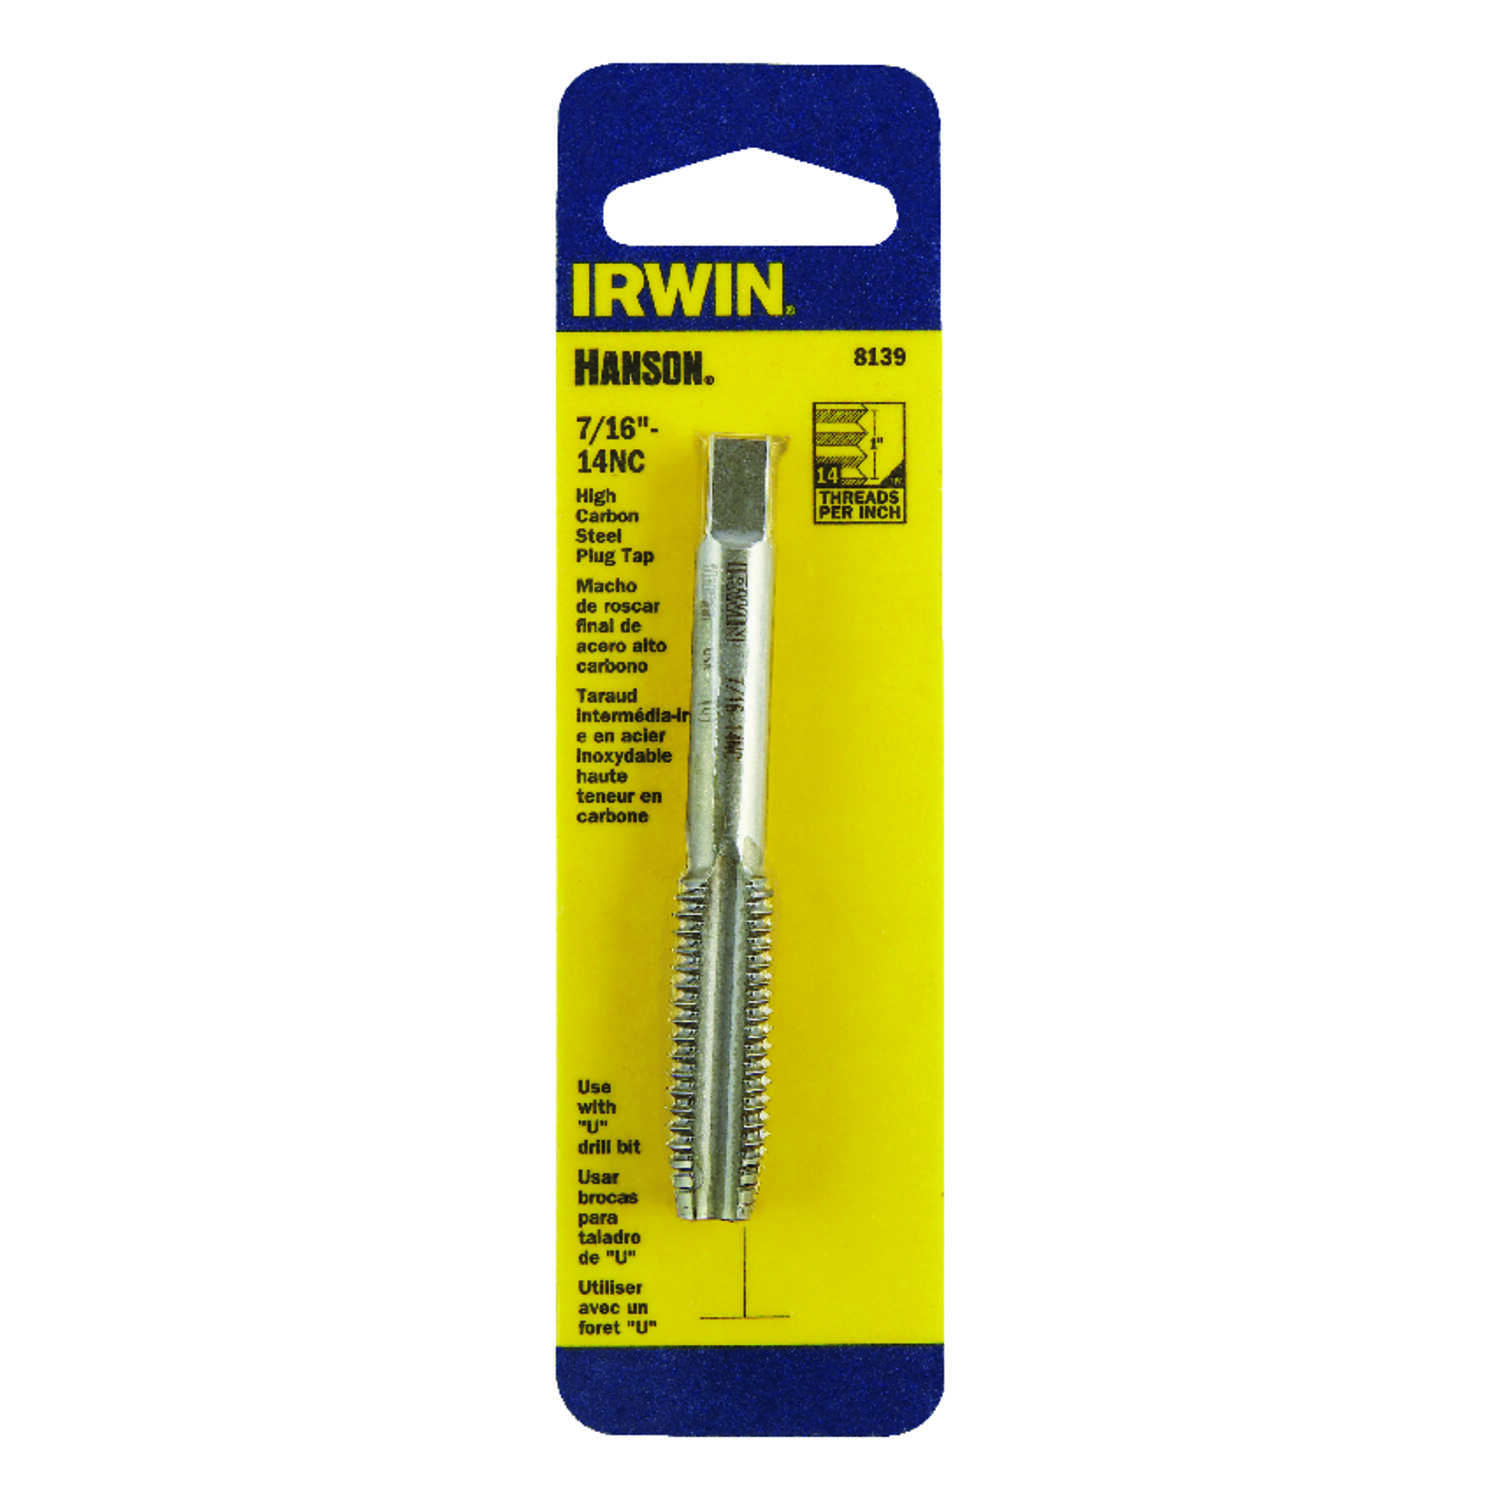 Irwin  Hanson  High Carbon Steel  SAE  Fraction Tap  7/16 in.-14NC  1 pc.